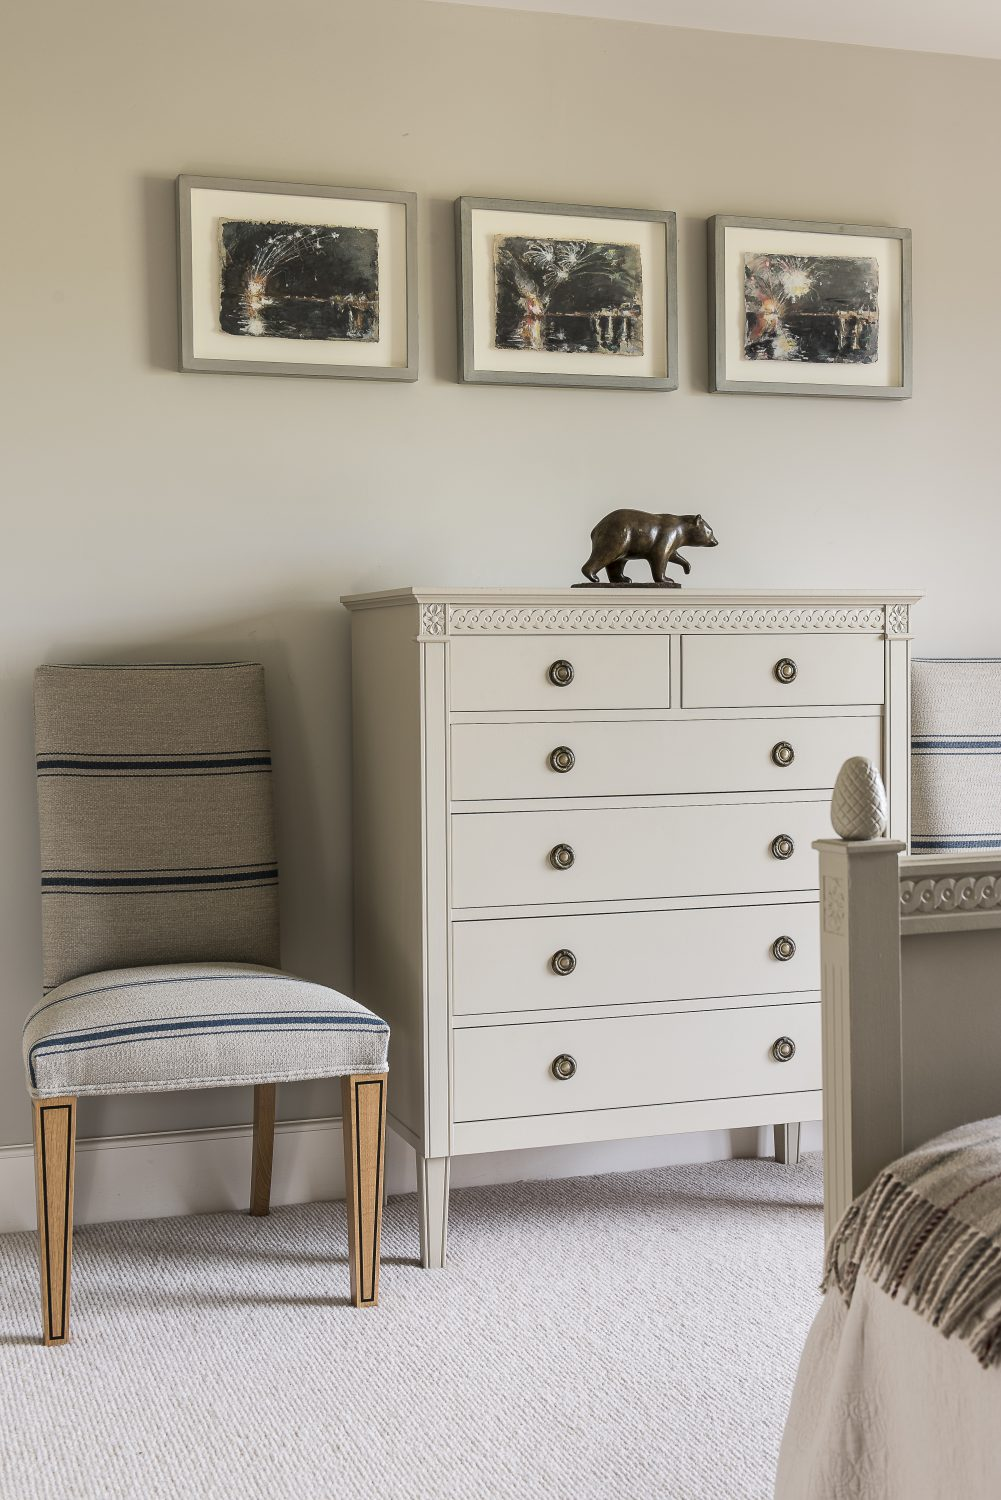 The chest of drawers is client's own and the chairs are covered in William Yeoward stripe